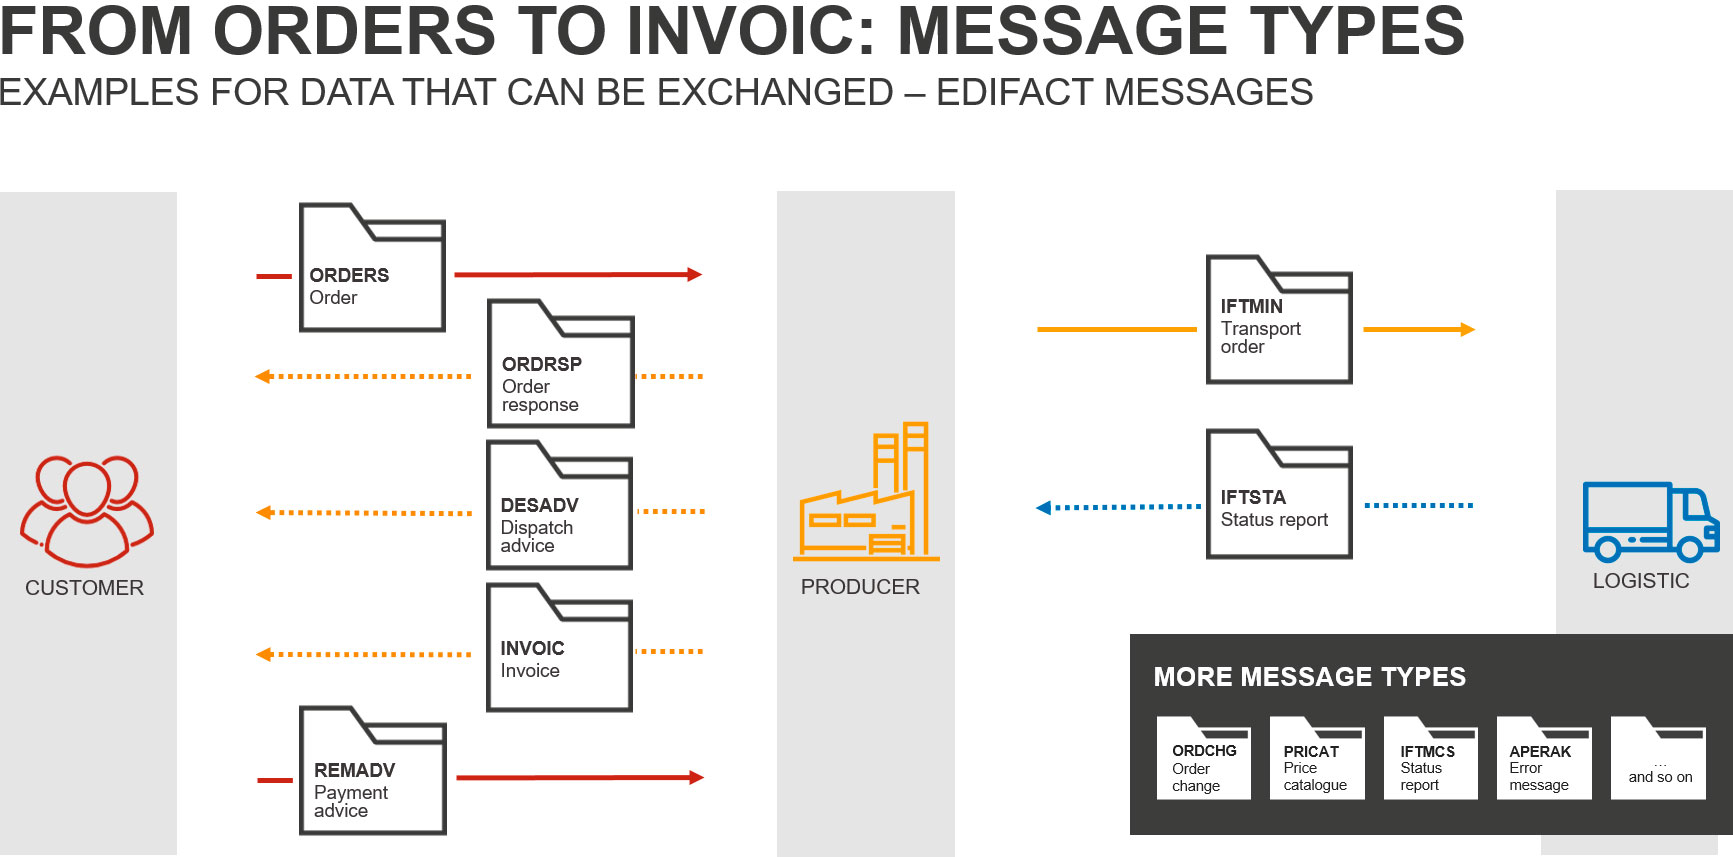 EDIFACT Standards from Orders to INVOIC